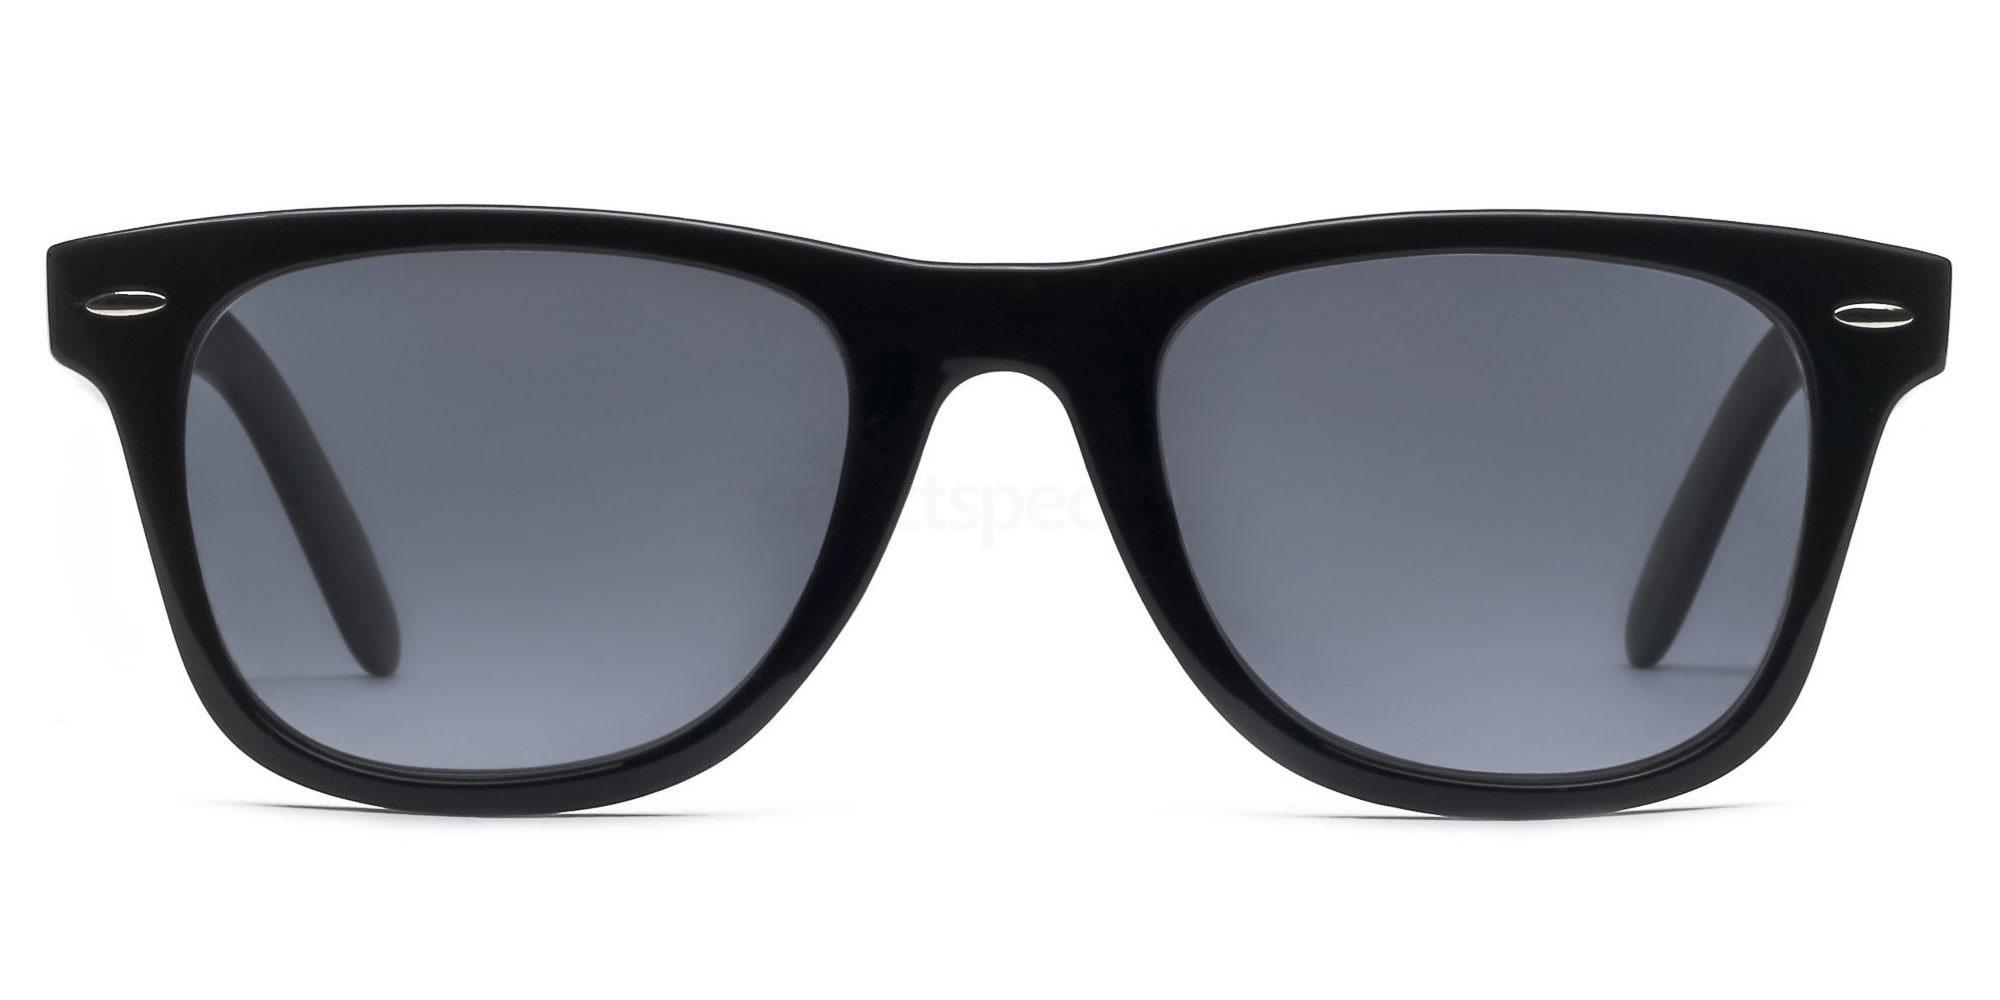 C01 Dark Grey P2429 - Black (Sunglasses) Sunglasses, Savannah